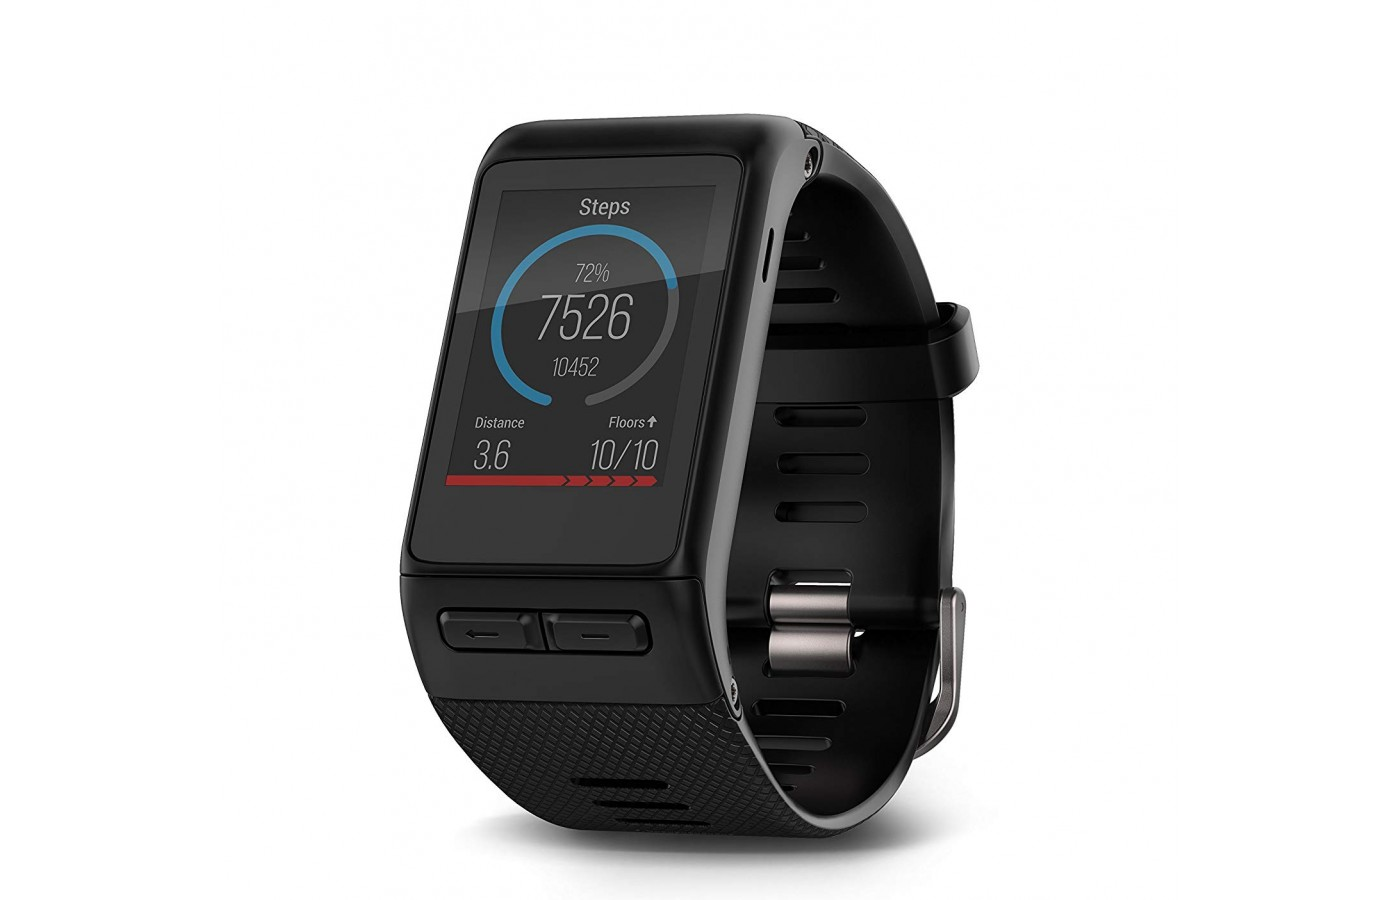 More and more fitness trackers are expanding their capabilities beyond just that of step counting or stair climbing